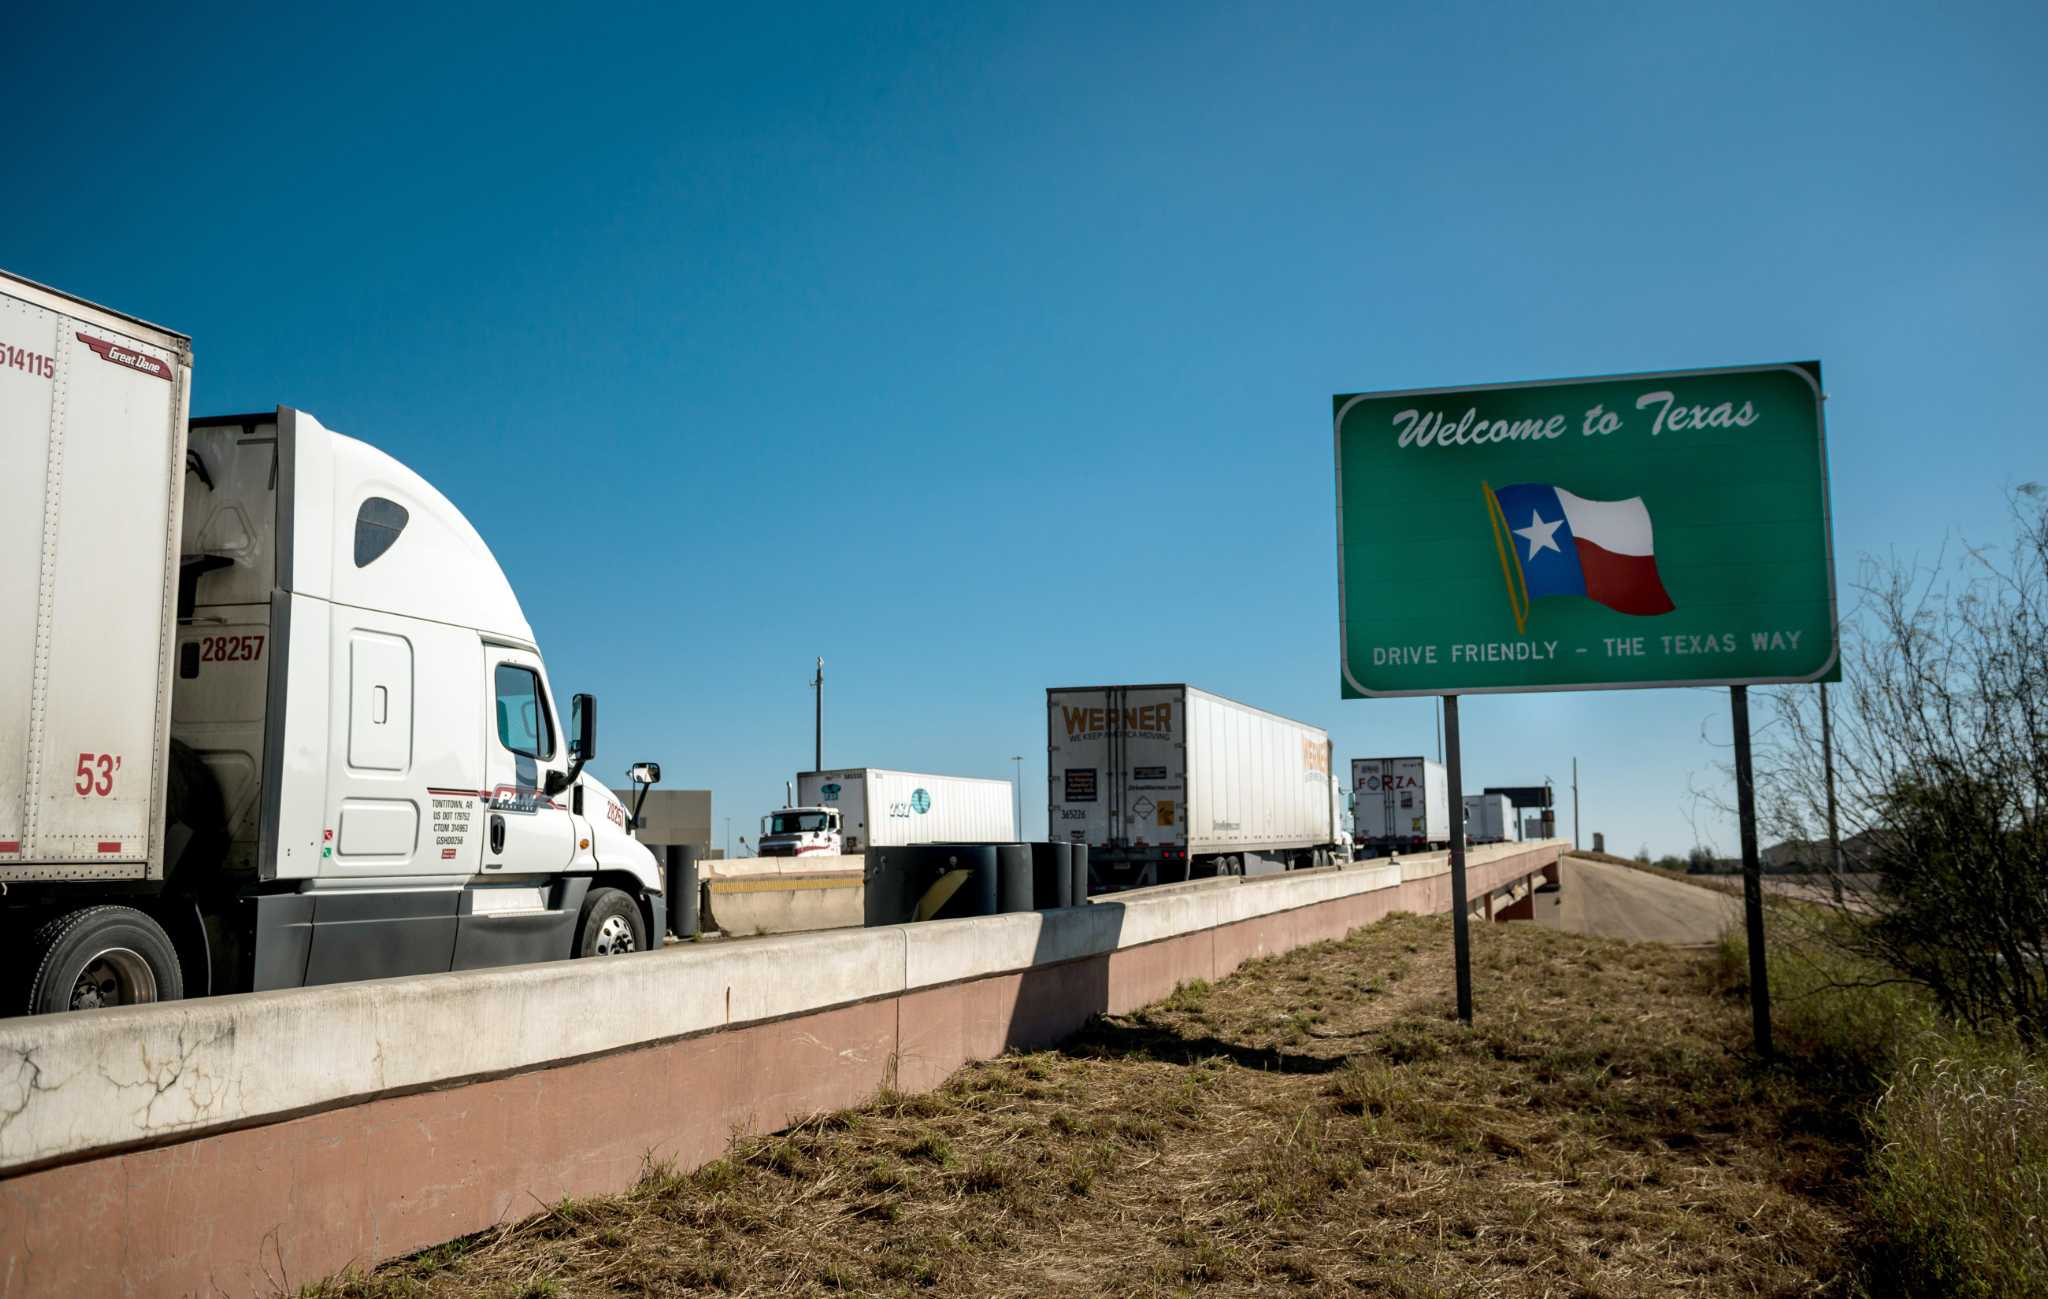 Earn $14,000 a week working for this Texas trucking company